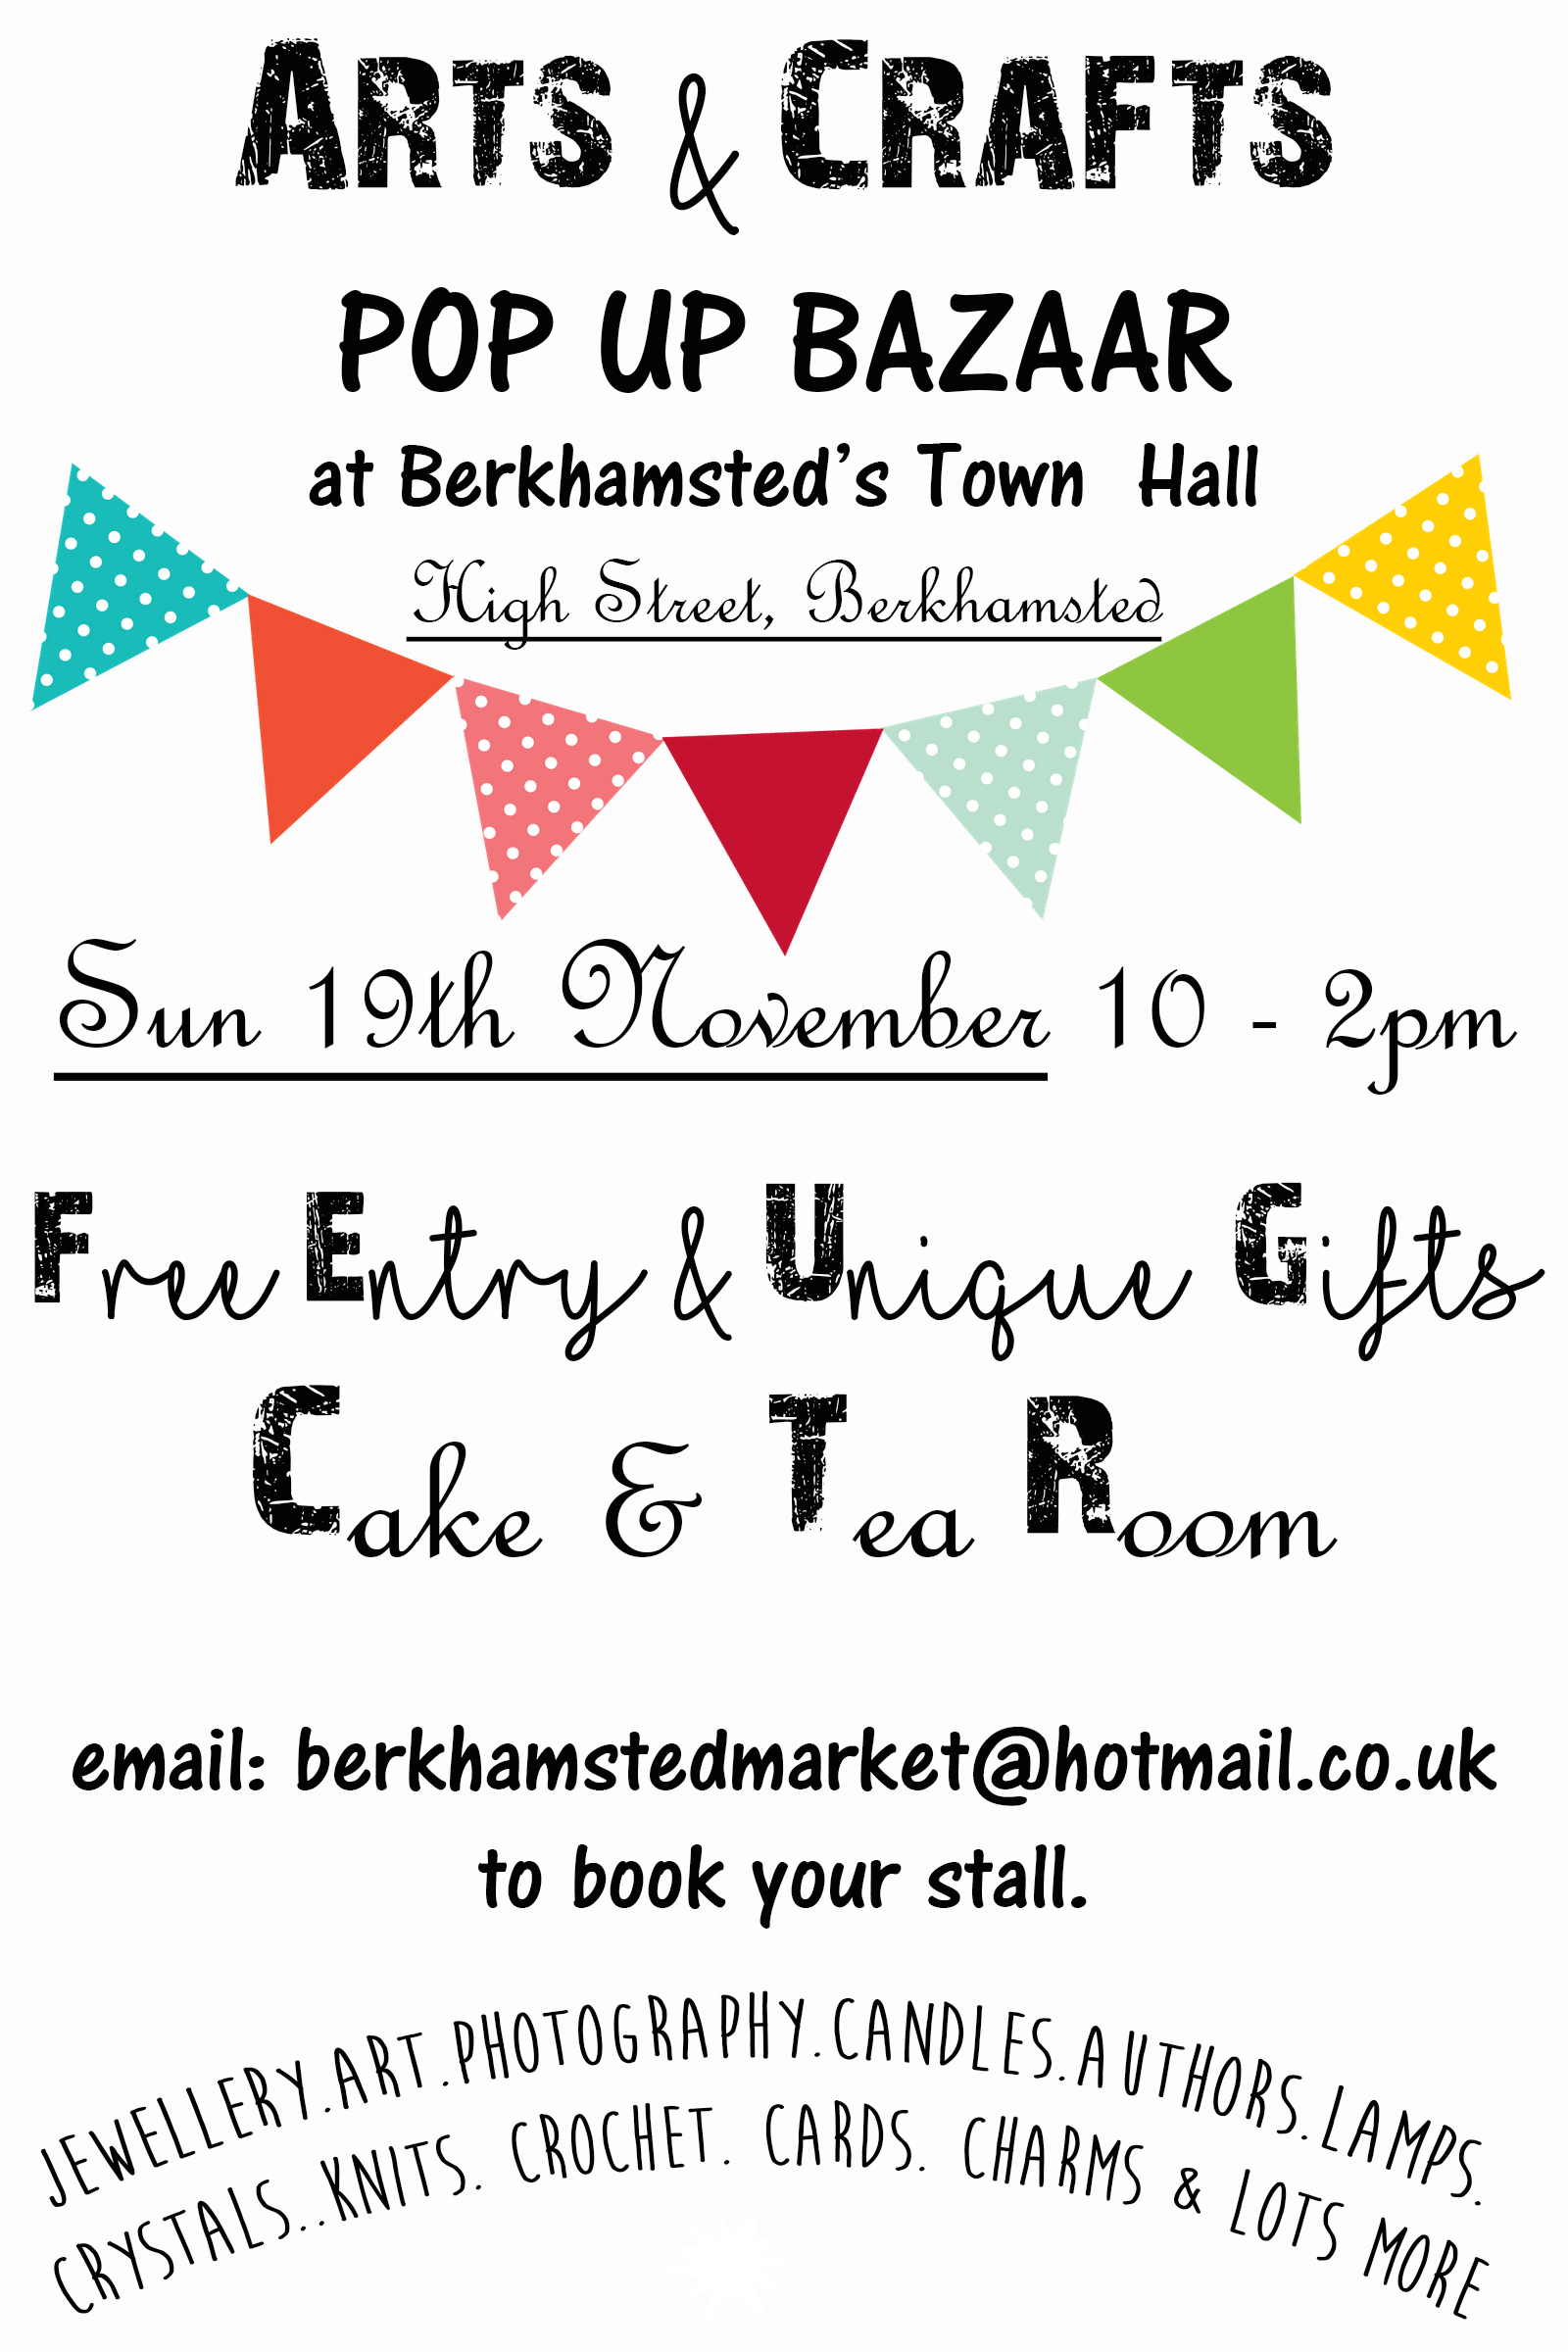 Uncategorized Hotmail Sign In Email - If you would like a stall please email berkhamstedmarket hotmail co uk to book yours thank you